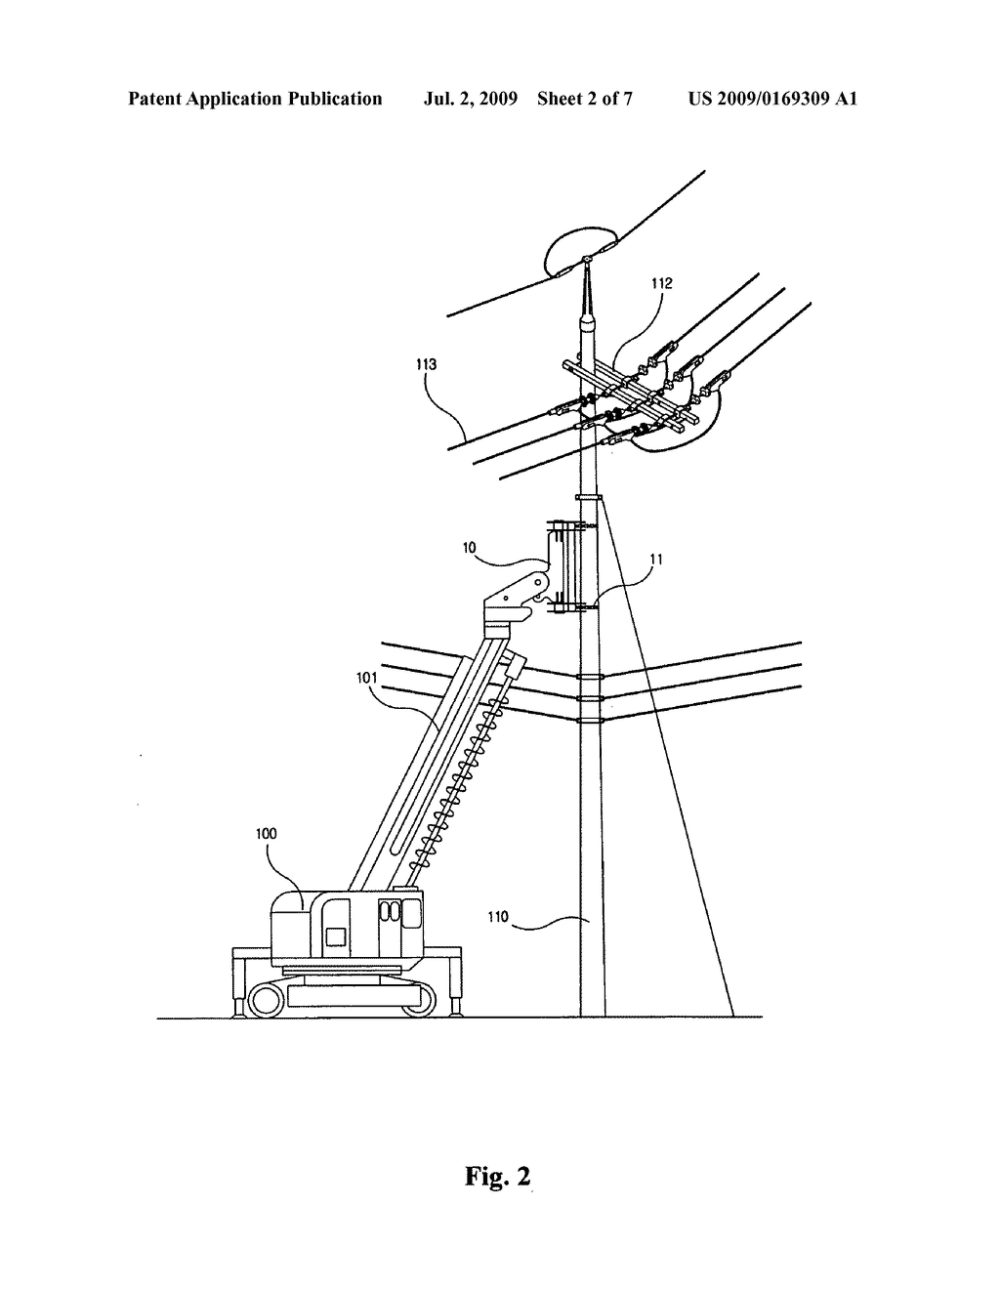 medium resolution of method for replacing concrete utility pole without interrupting power supply by adopting pole clamp and pole crusher diagram schematic and image 03